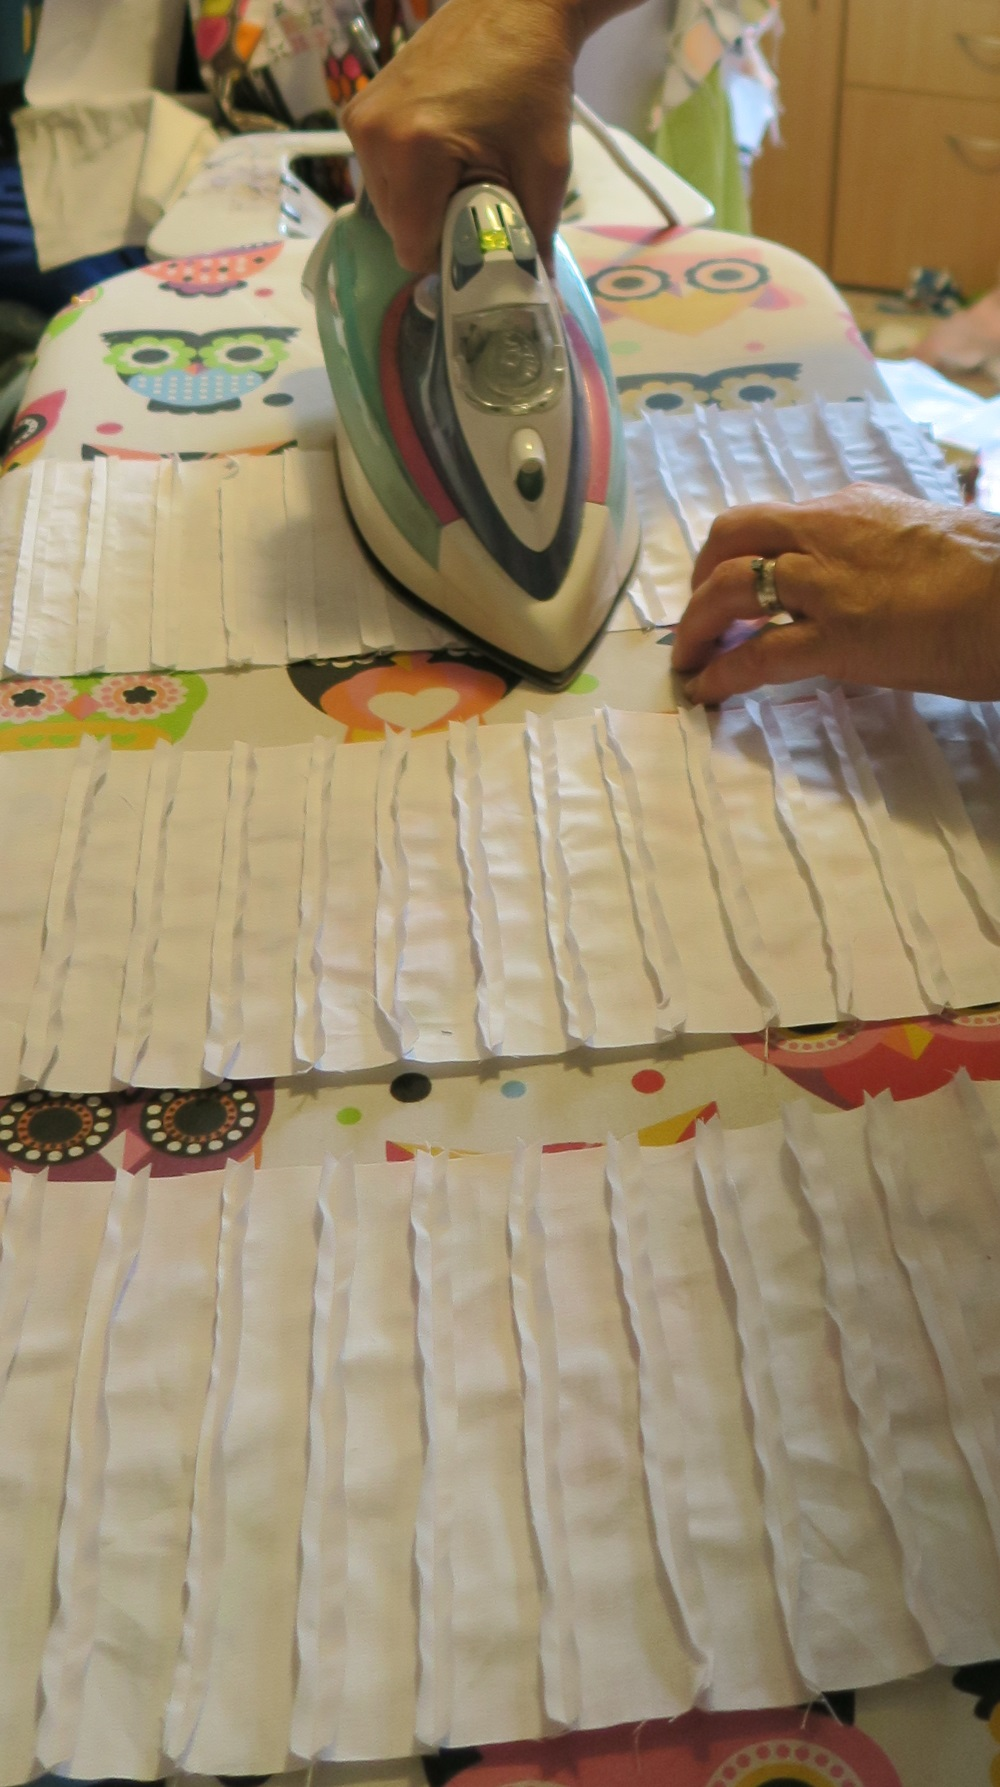 Rachael pressing open border. Previously sewn white fabric is being pressed on a whit ironing board with an iron. Three different sheets of white sewn fabric is visiable.